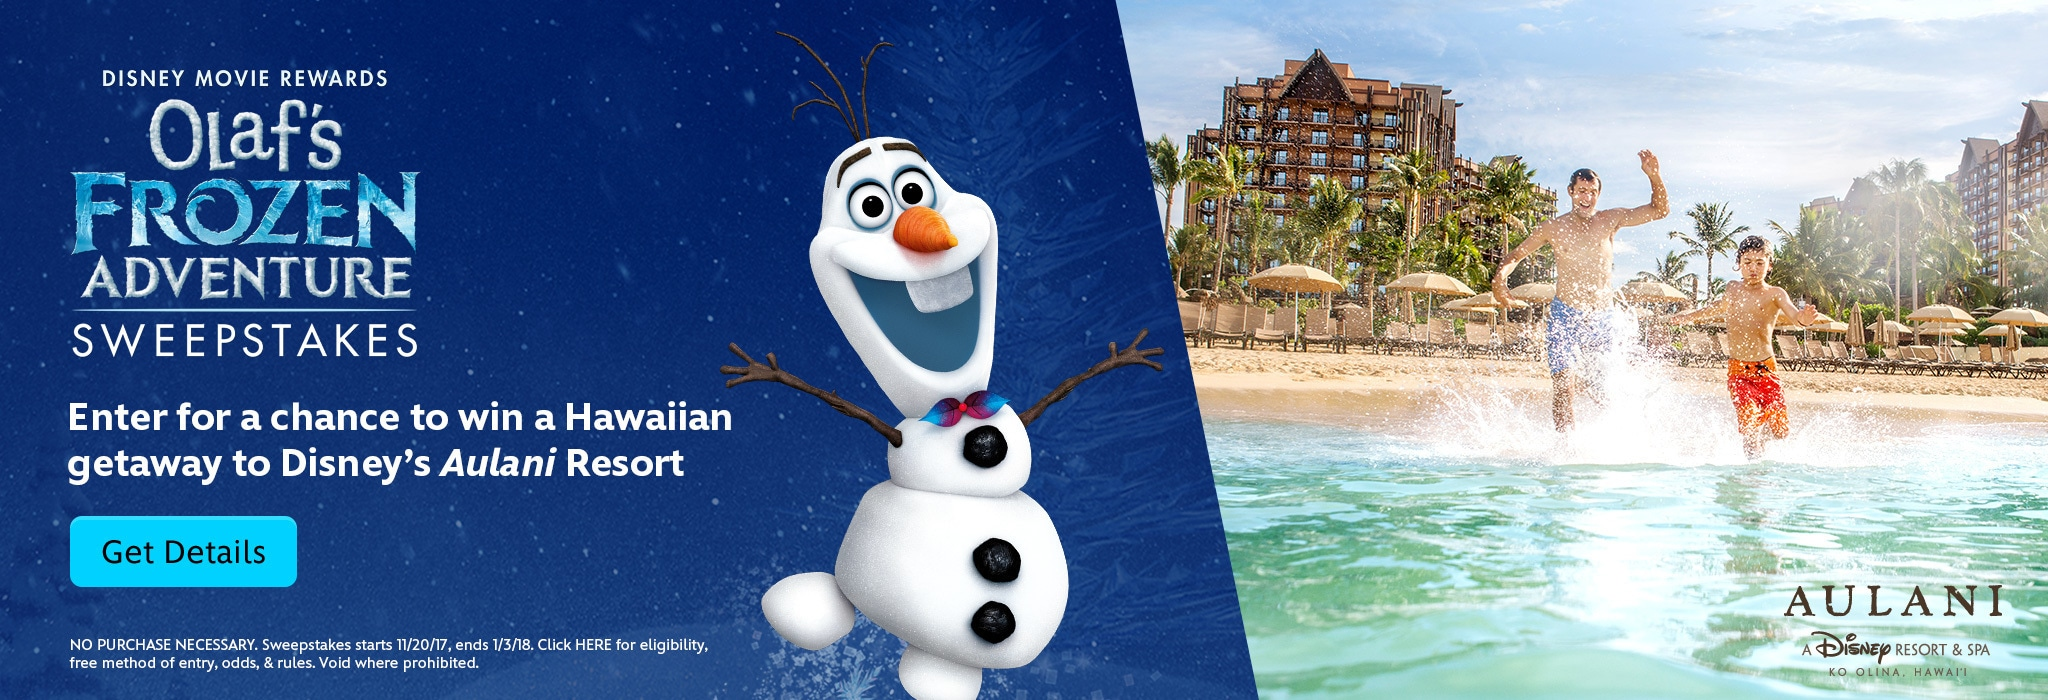 Olaf's Frozen Adventure Sweepstakes - Enter for a chance to win a Hawaiian getaway to Disney's Aulani Resort